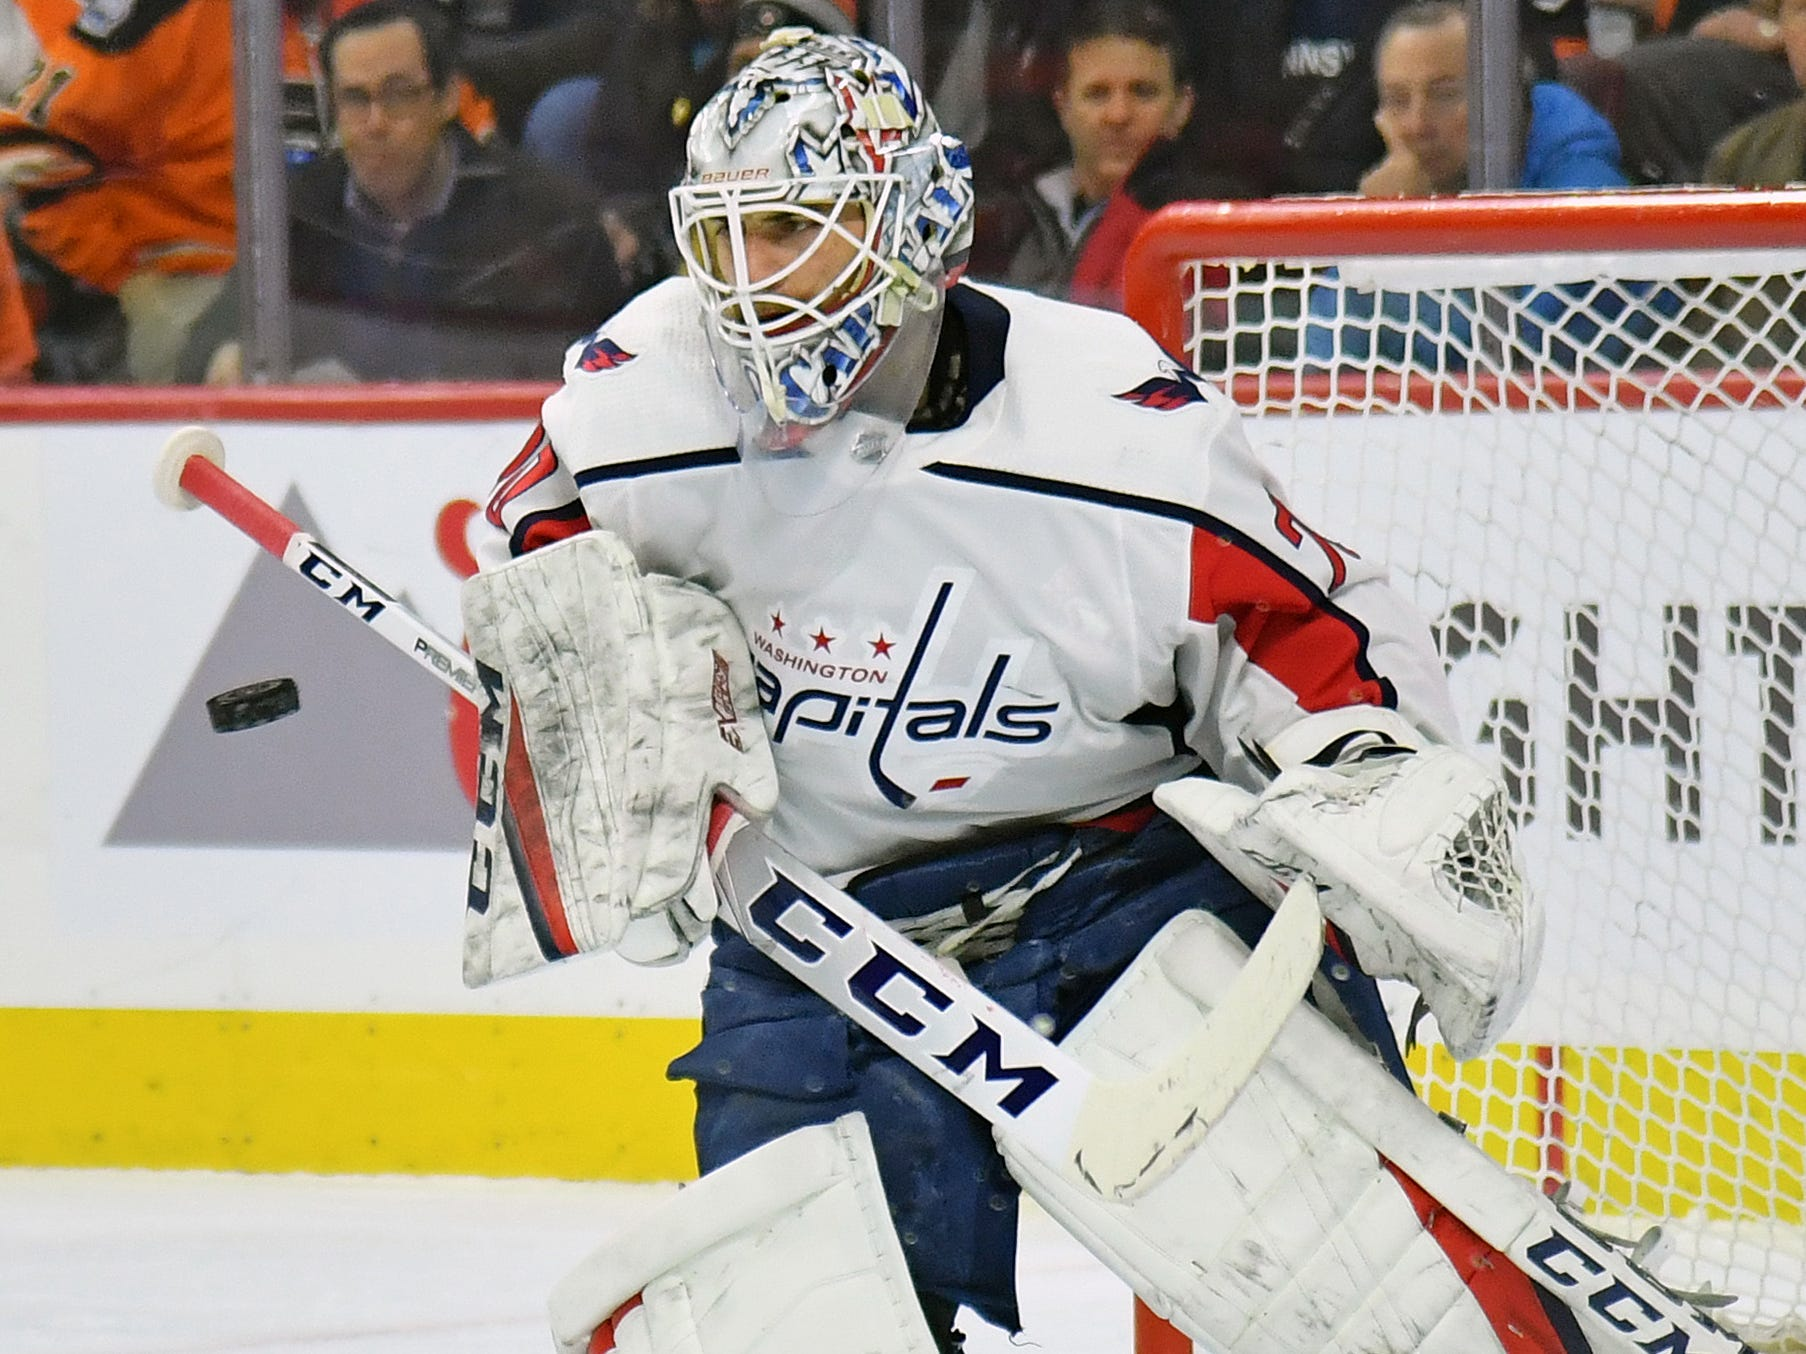 March 6: Washington Capitals goaltender Braden Holtby makes a save against the Philadelphia Flyers. He picked up his 250th victory in his 409th game, the second-fastest in NHL history to hit that milestone behind Ken Dryden (381).